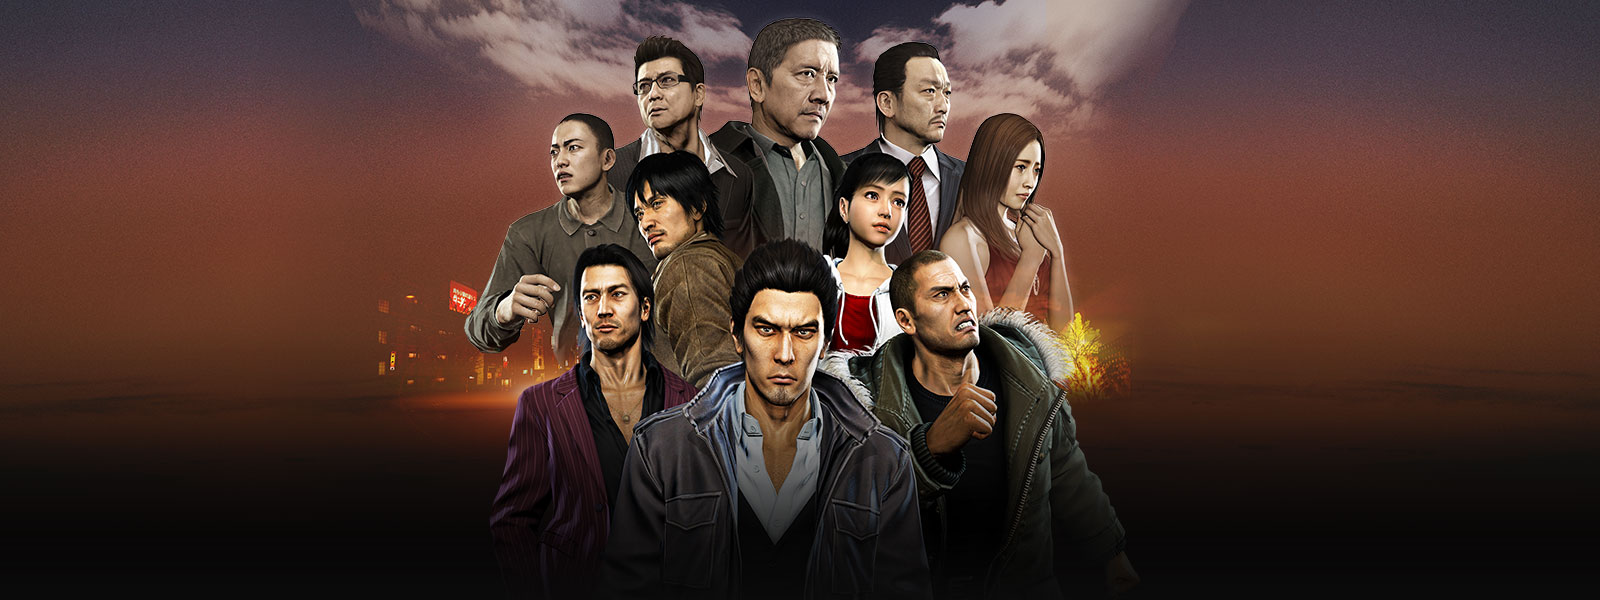 Kazuma Kiryu standing in front of a collage of Tojo Clan and Omi Alliance characters over a foggy city scene